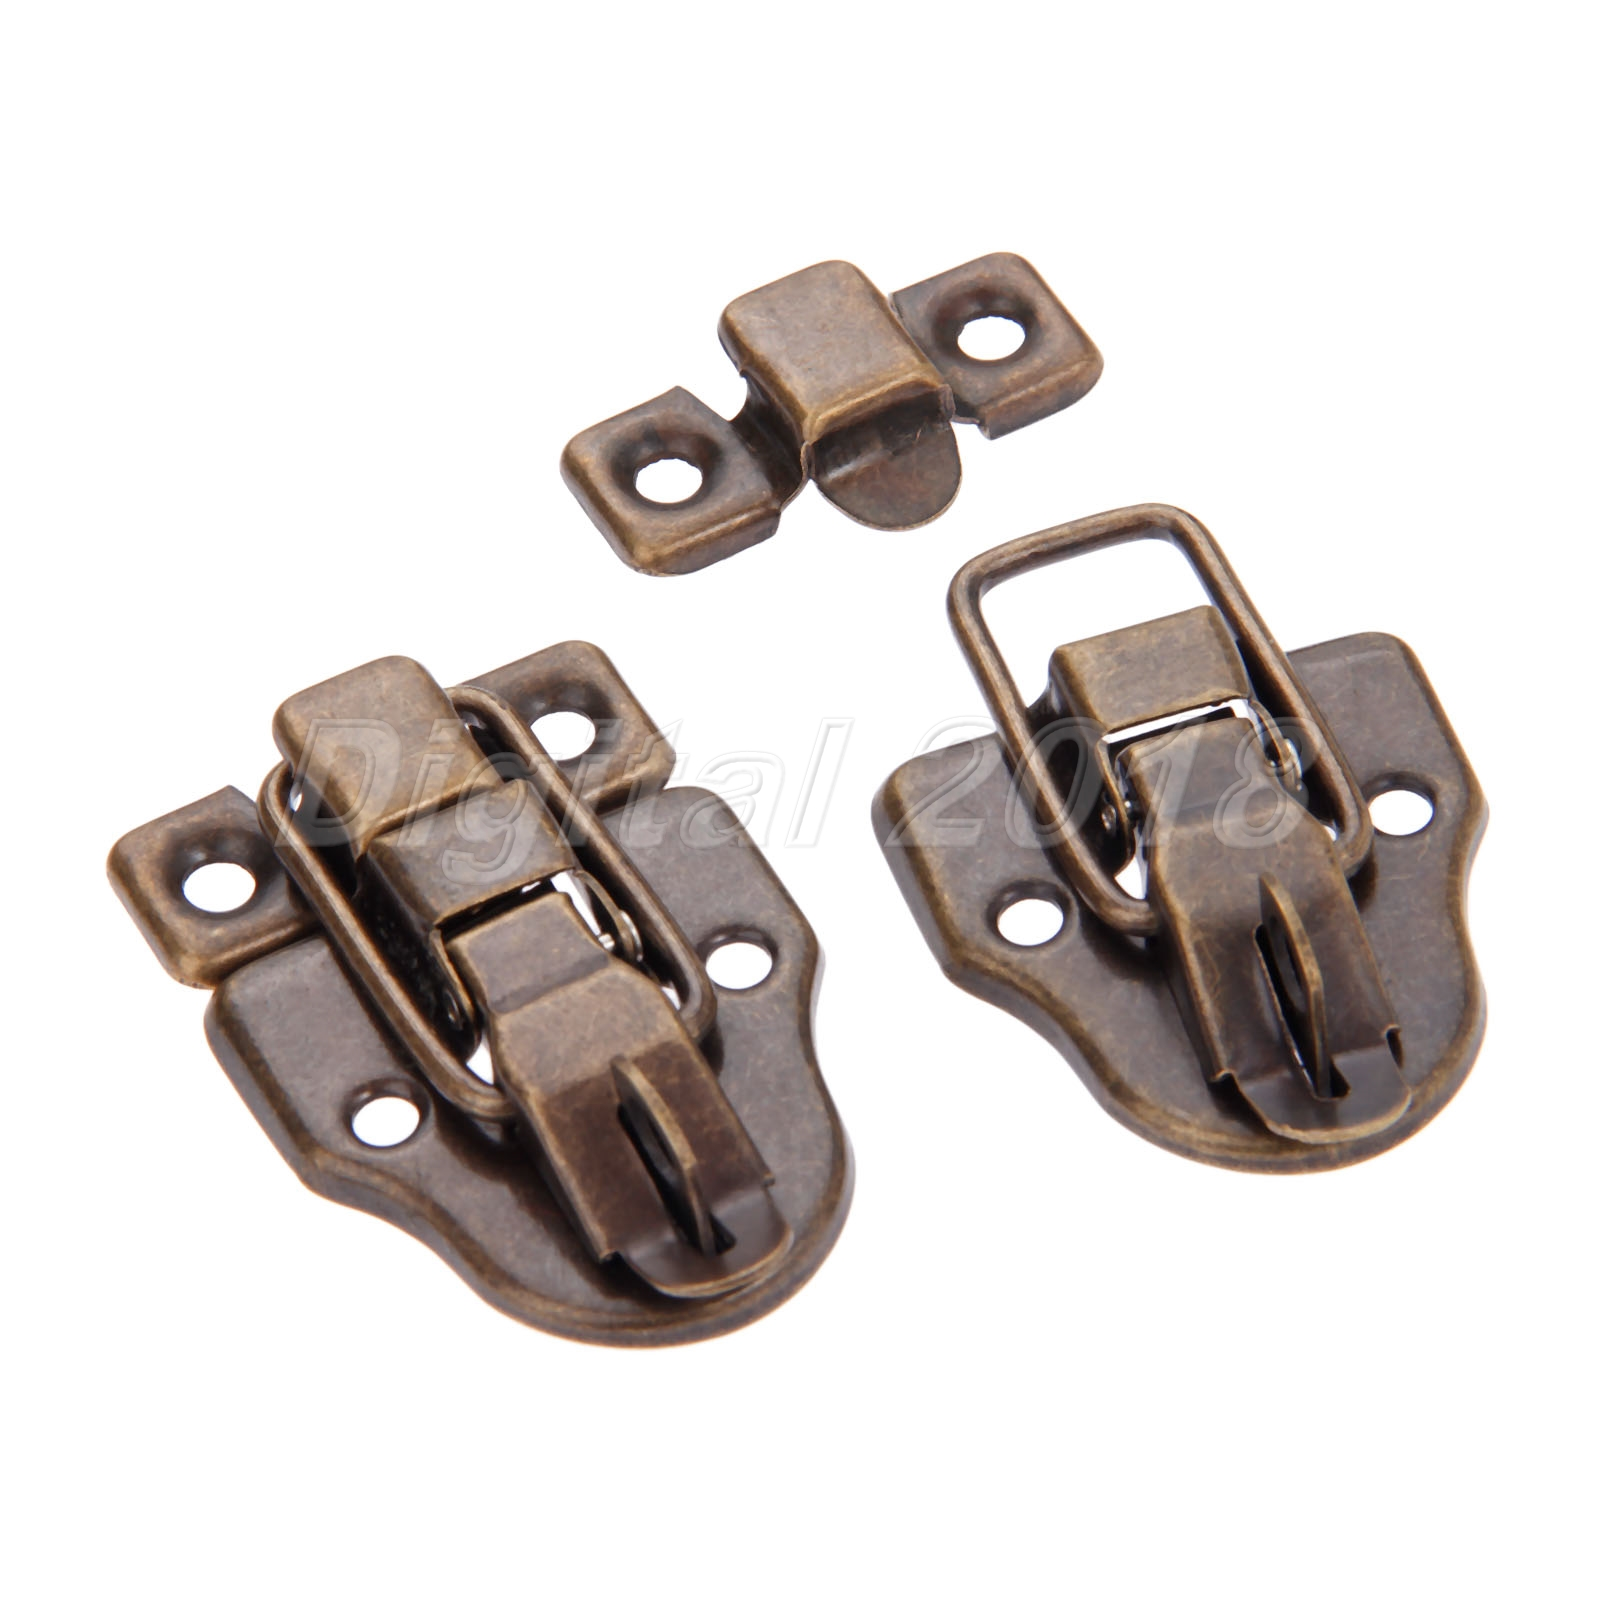 59mm*40mm Gold Silver Cabinet Suitcase Jewelry Box Latch Hasps Lock Toggle Catch